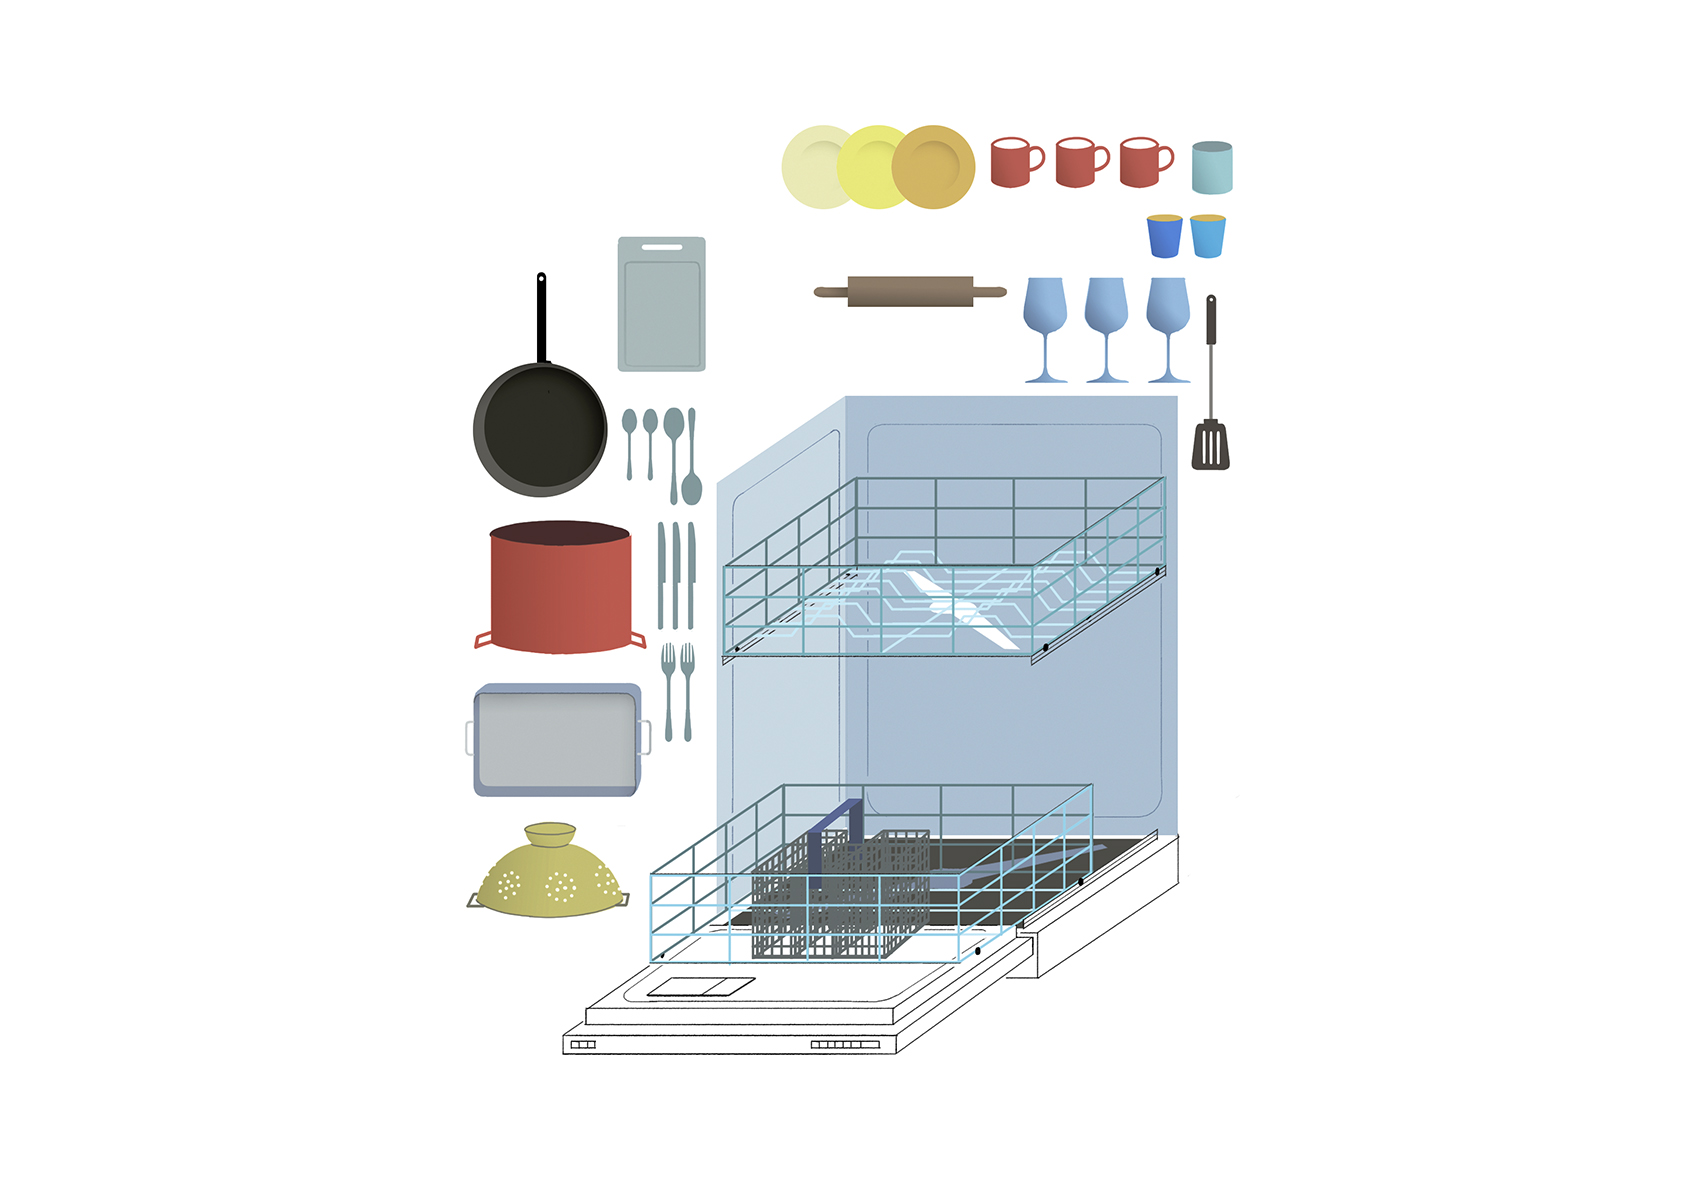 Illustration: Dishwasher and contents